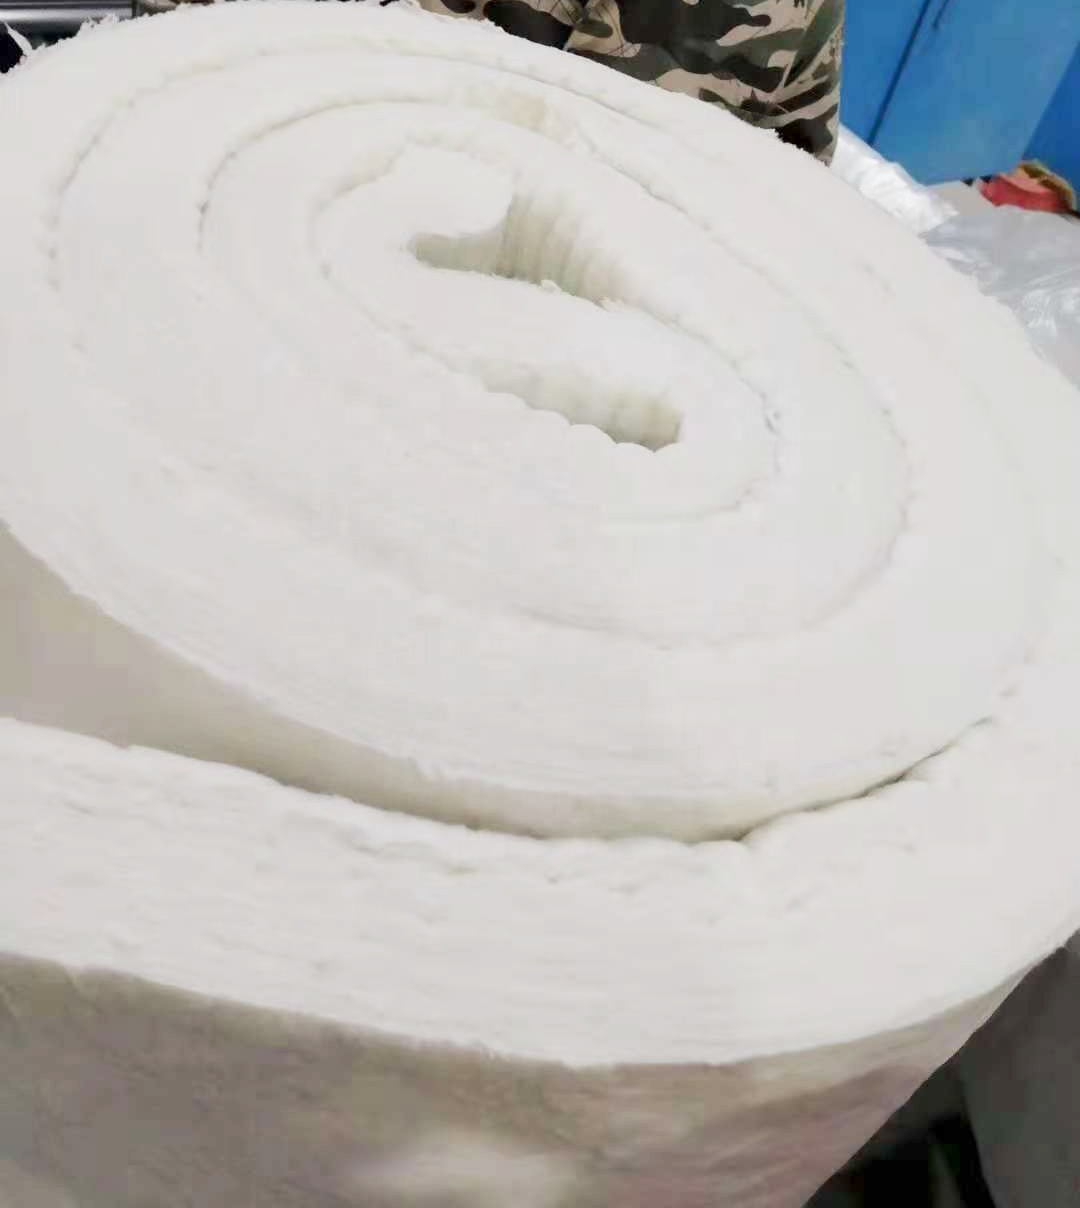 Factory price 1260C refractory ceramic fiber insulation blanket safety and environmental protection